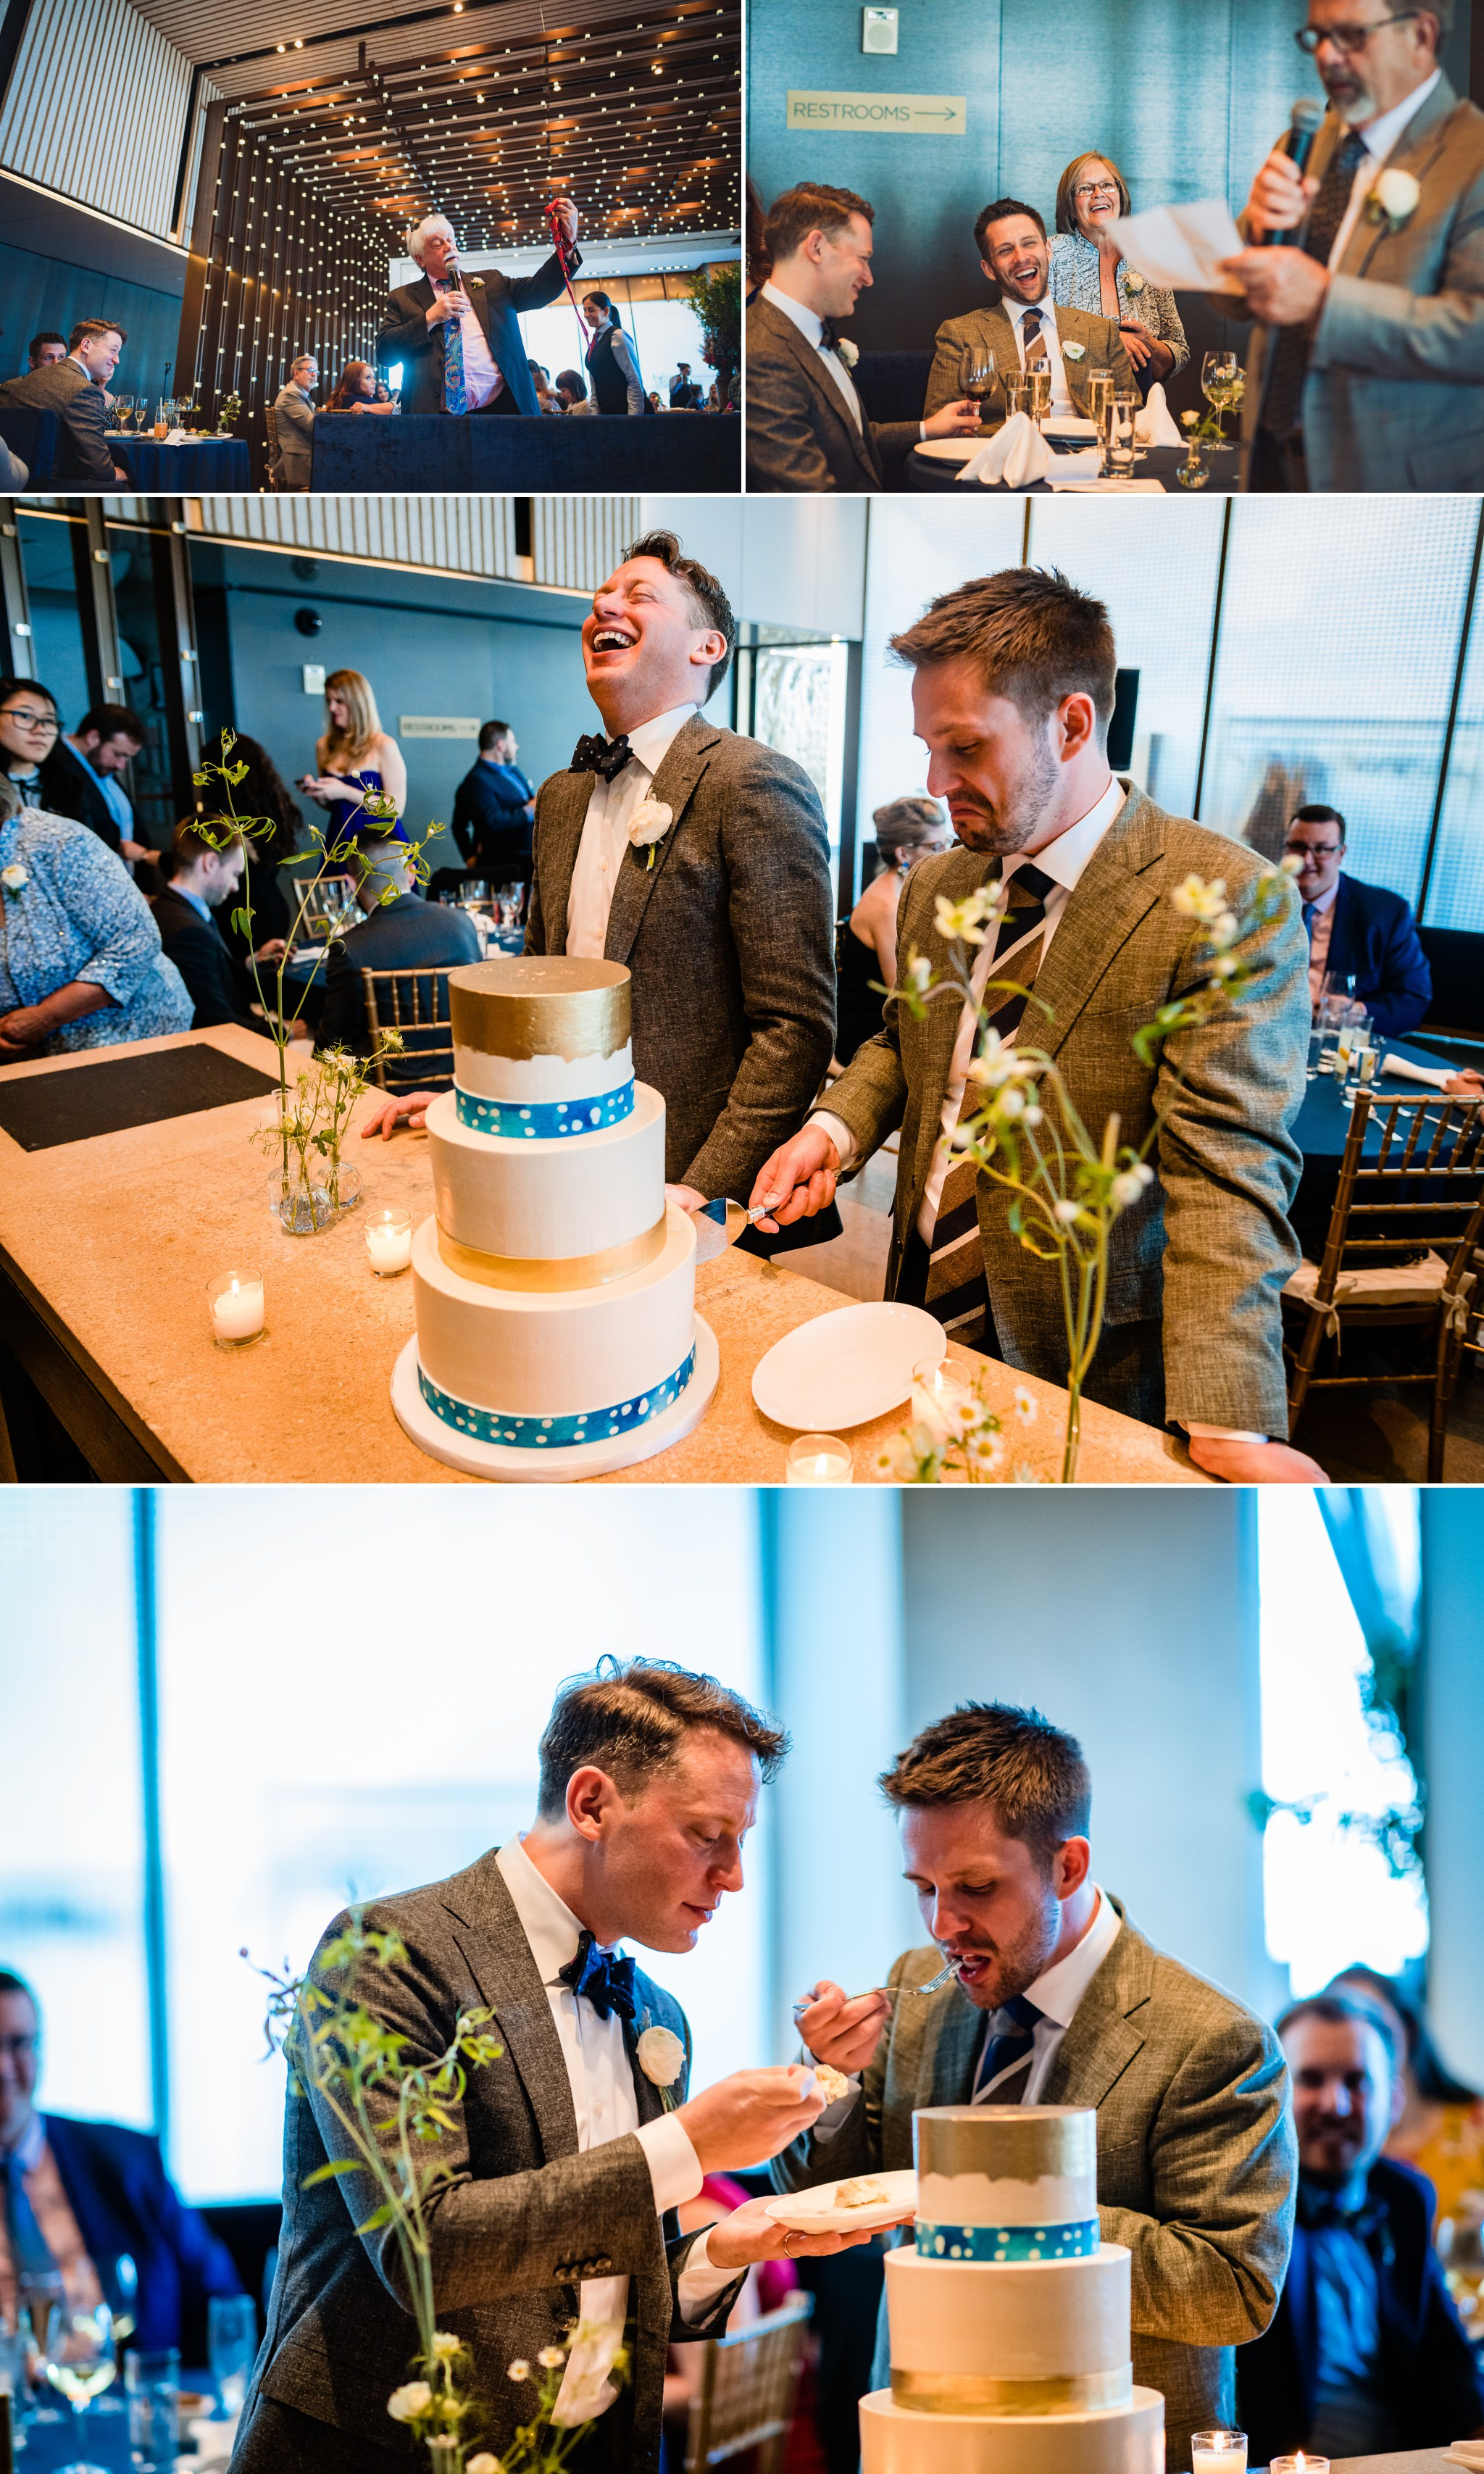 Scenes from Brian and Scotts brunch reception after their wedding ceremony at Riverpark NYC.  This is the cake cutting with a cake from Empire Cakes in Chelsea, Manhattan.